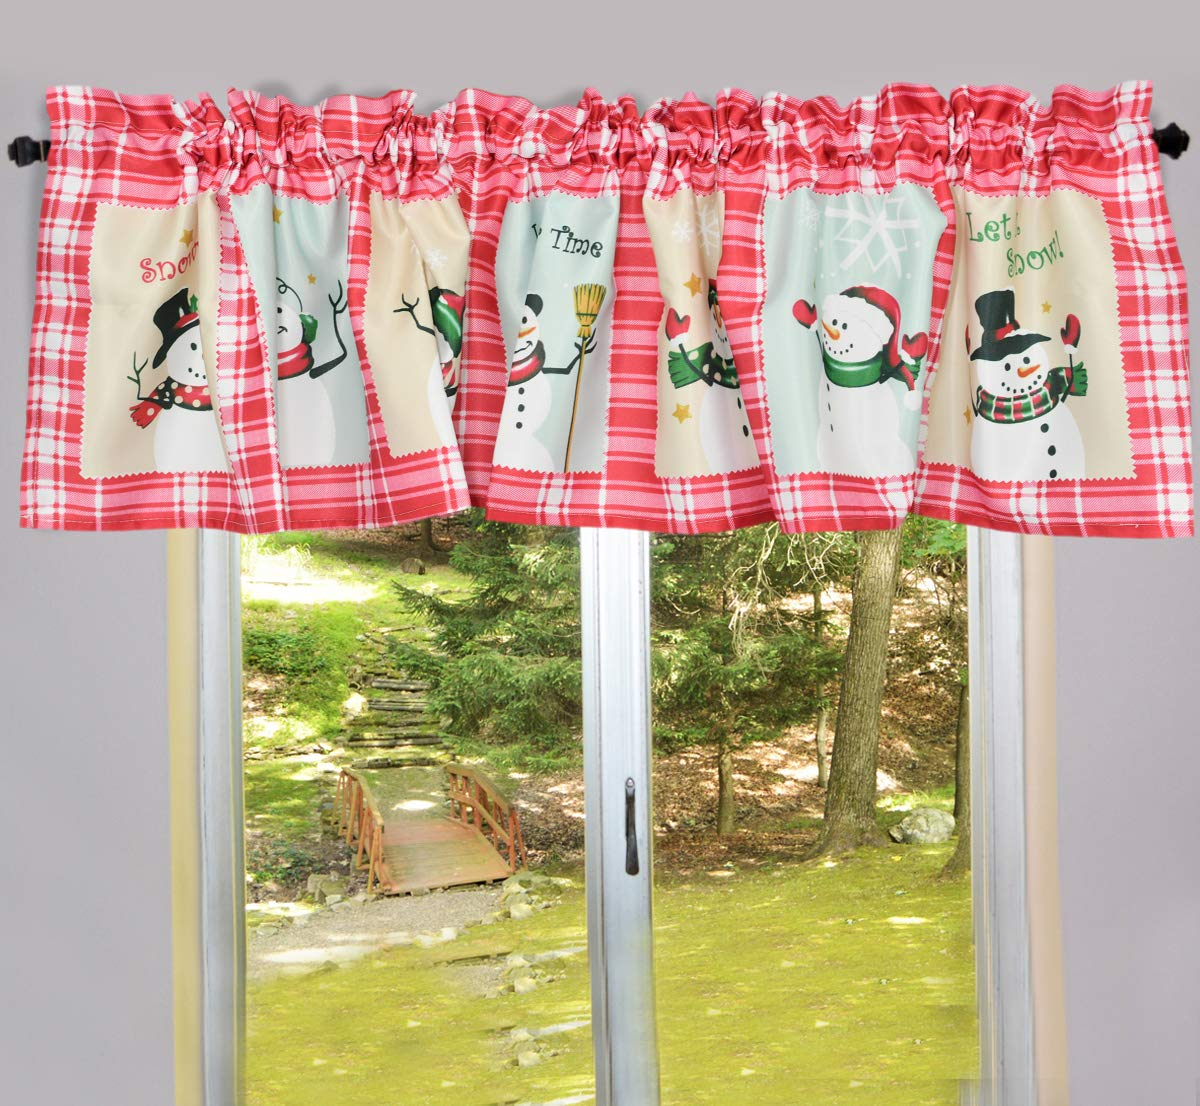 Home-X Snow Time Checkered Window Valance//Curtains Christmas Decorations and Home D/écor